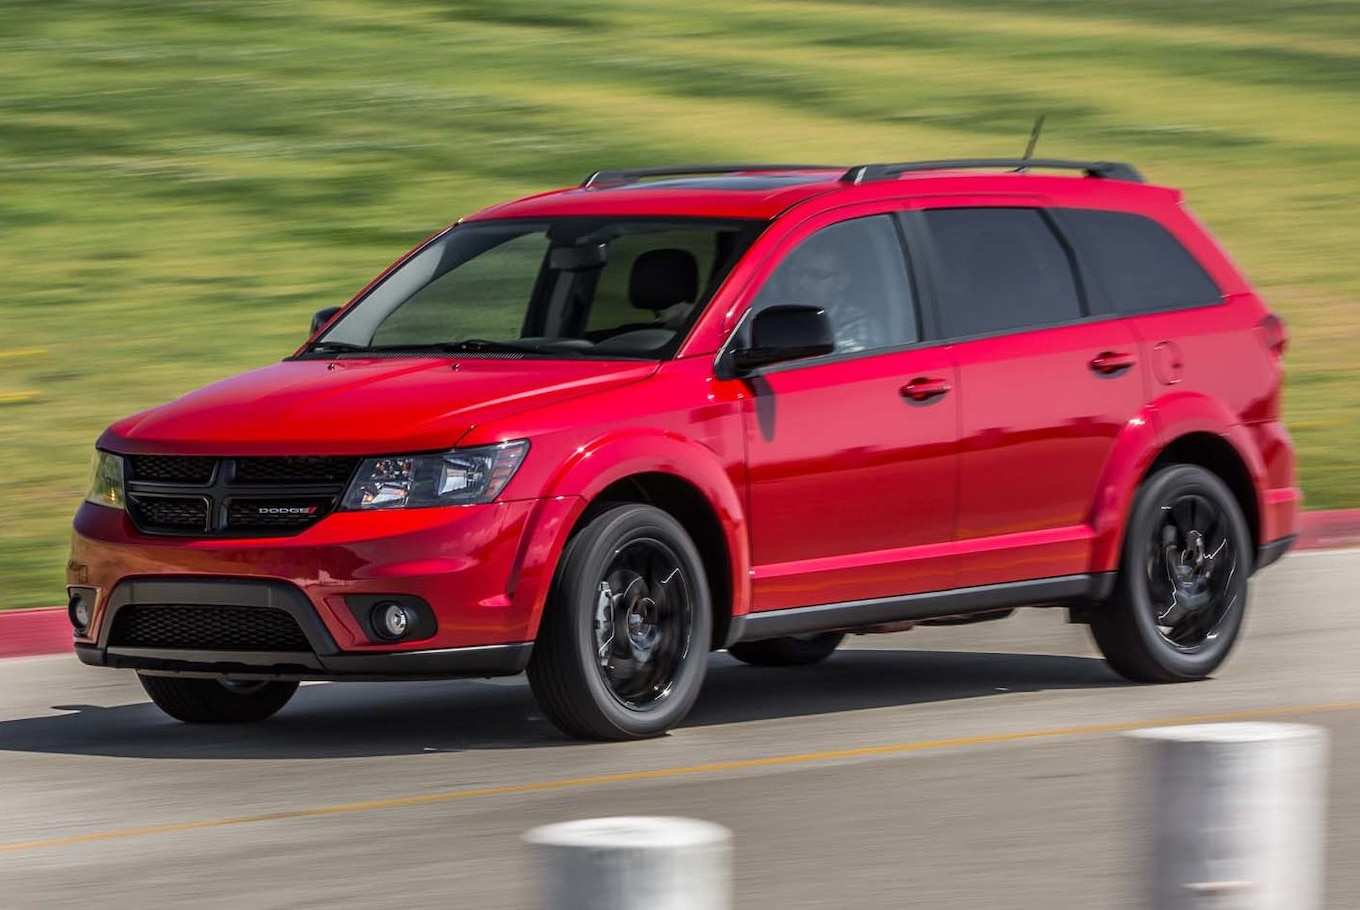 61 The Best 2020 Dodge Journey Gt Review And Release Date